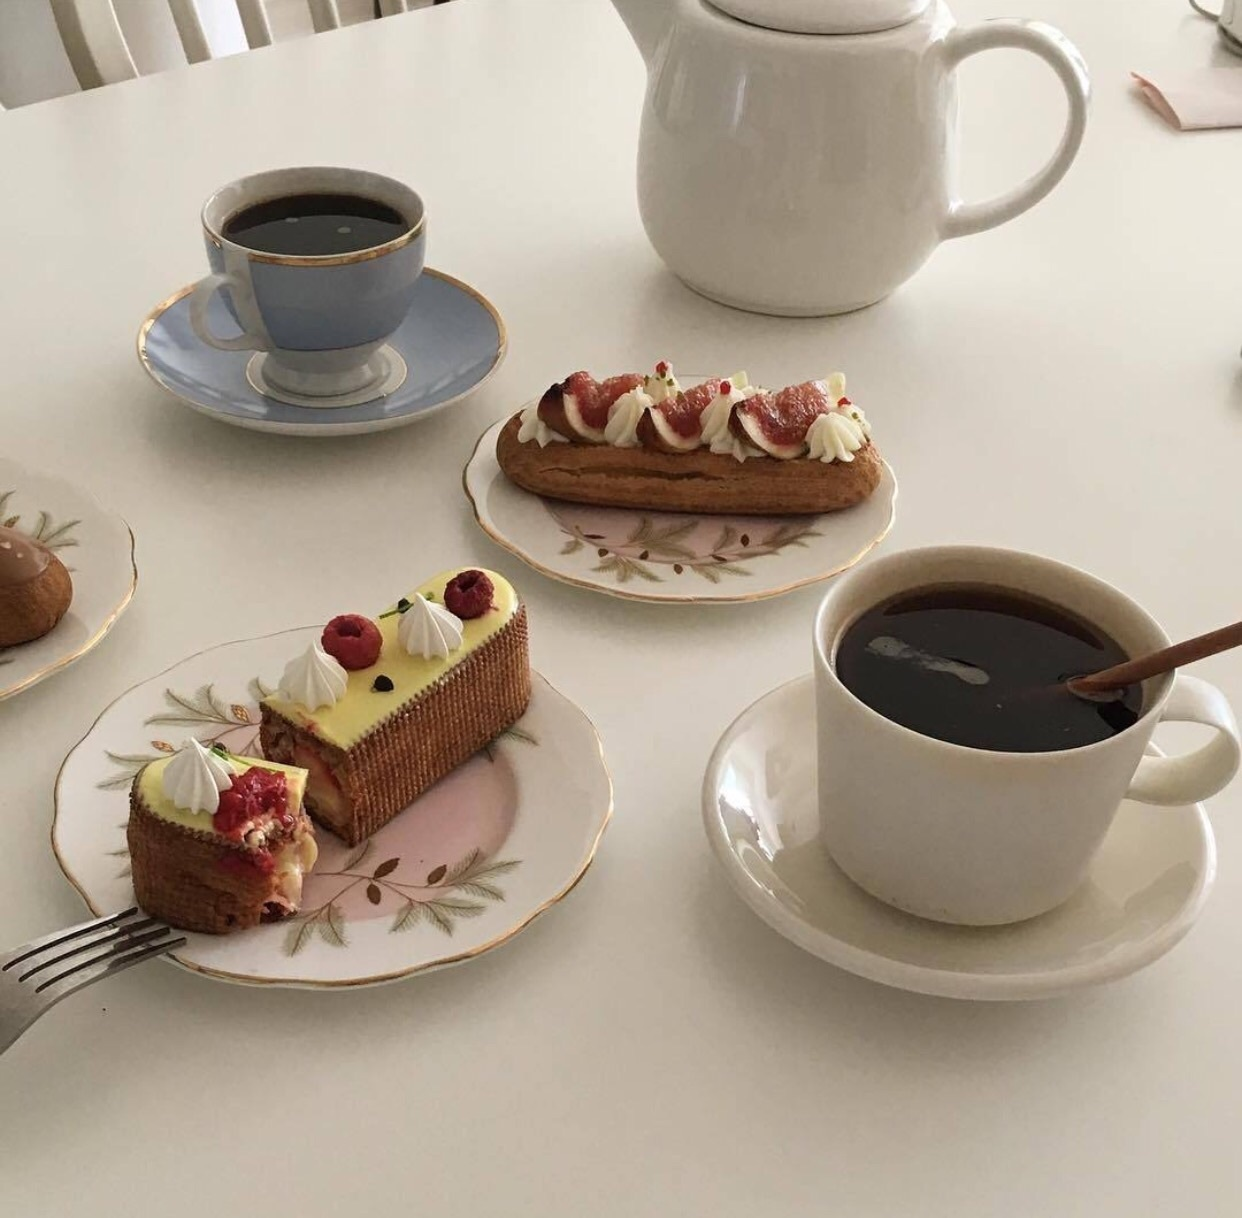 171 Images About Korean Cafe On We Heart It See More About Food Aesthetic And Pink